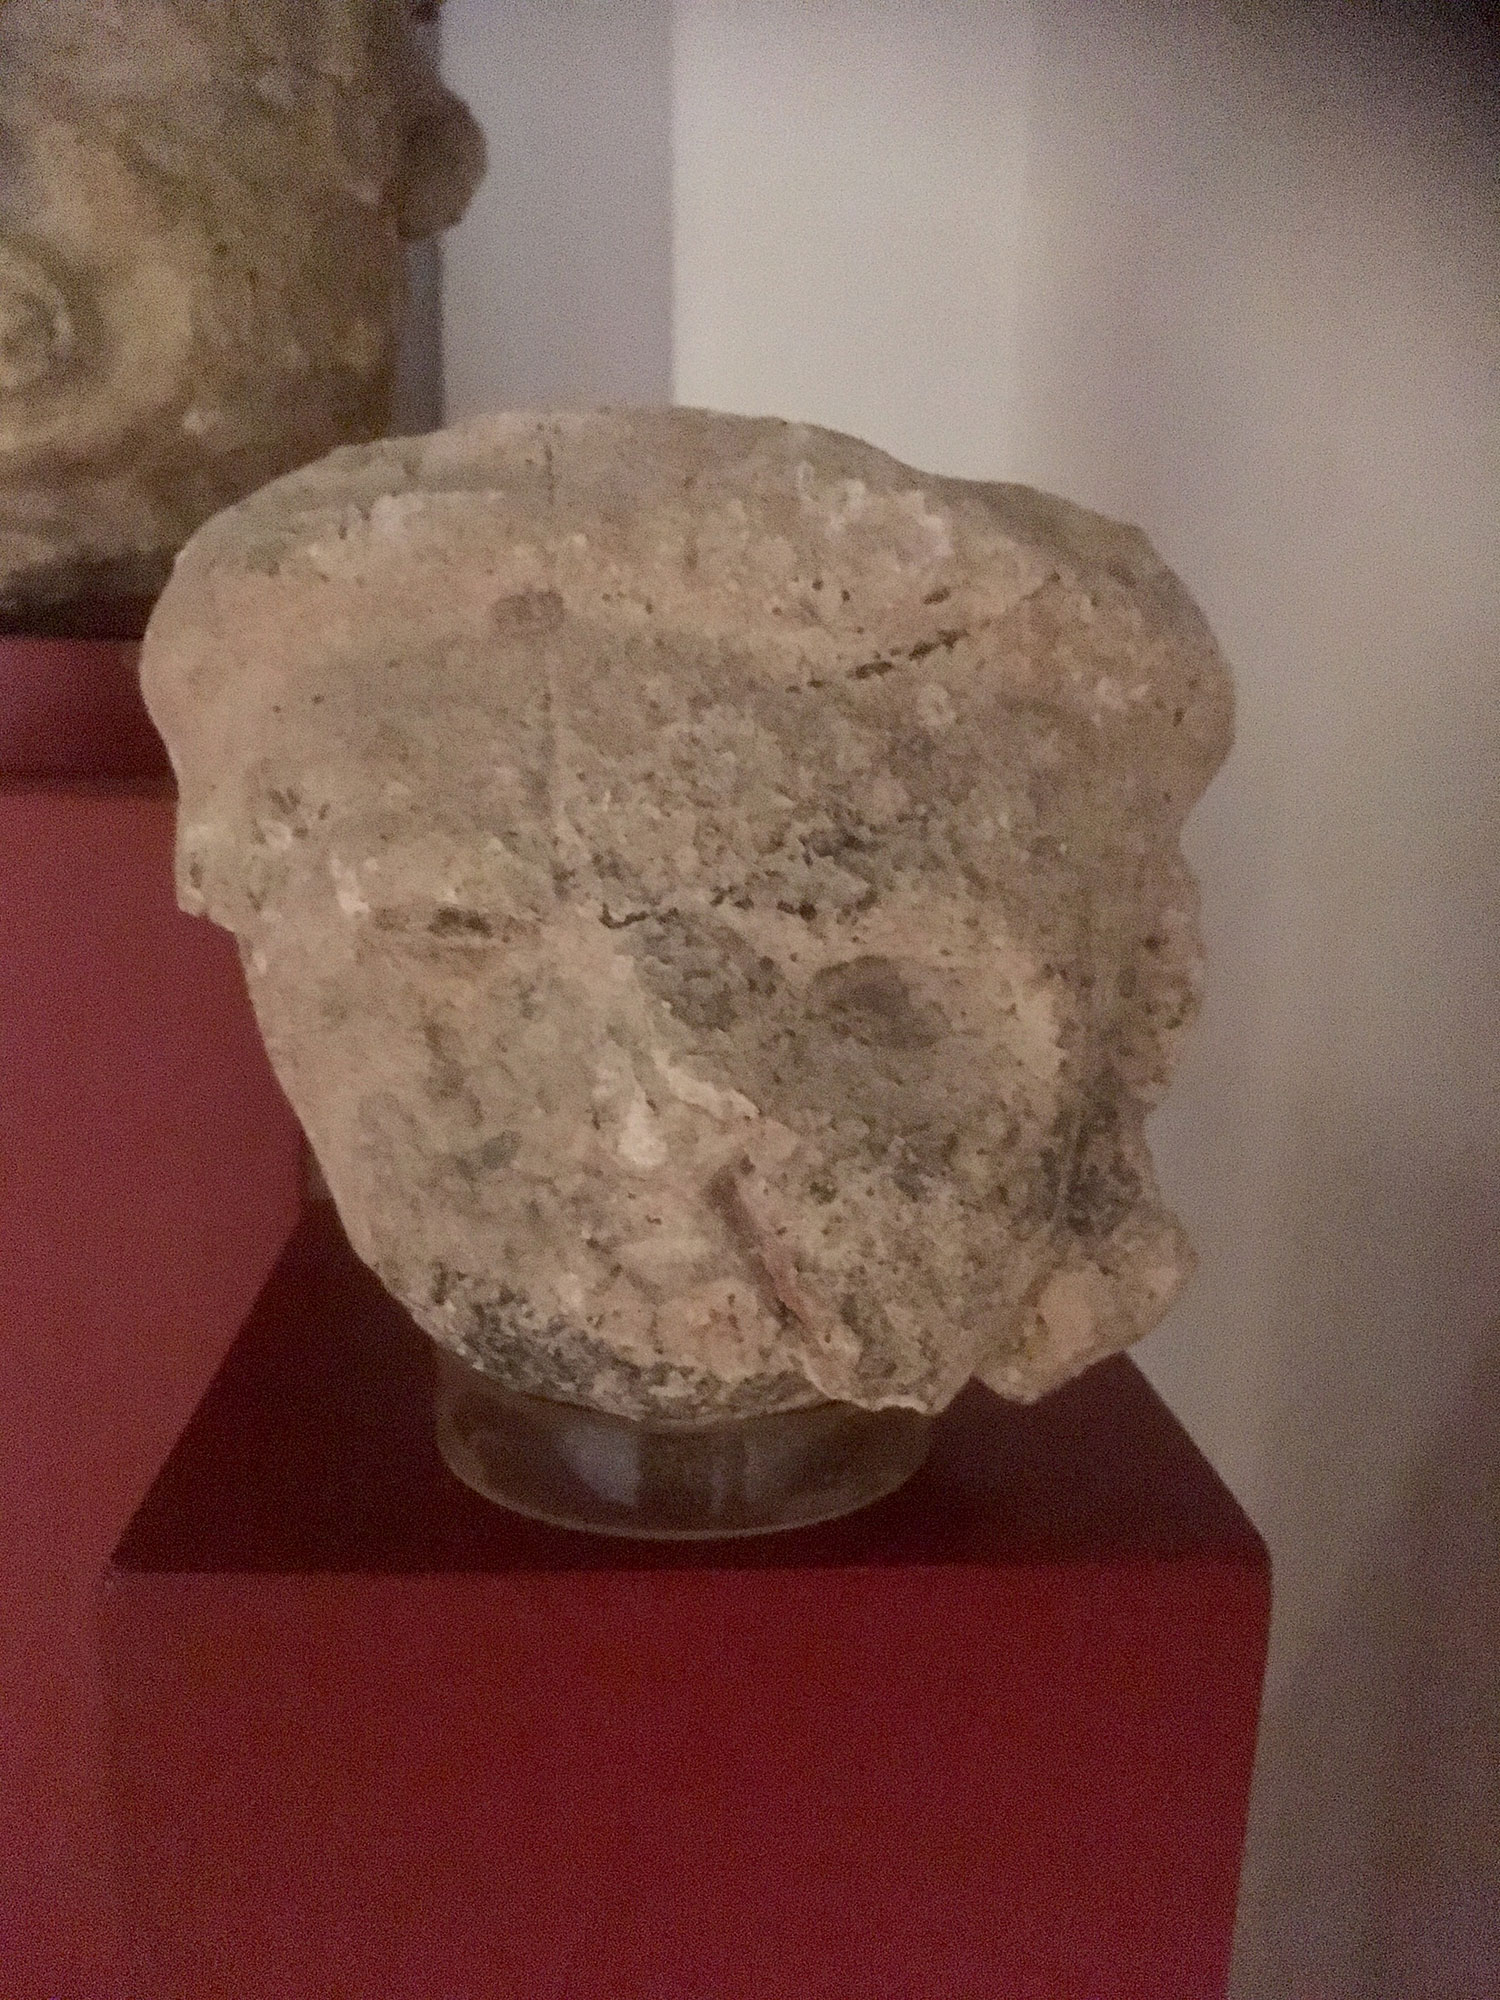 Head sculptures at Cozumel Museum. Island rulers or priests?